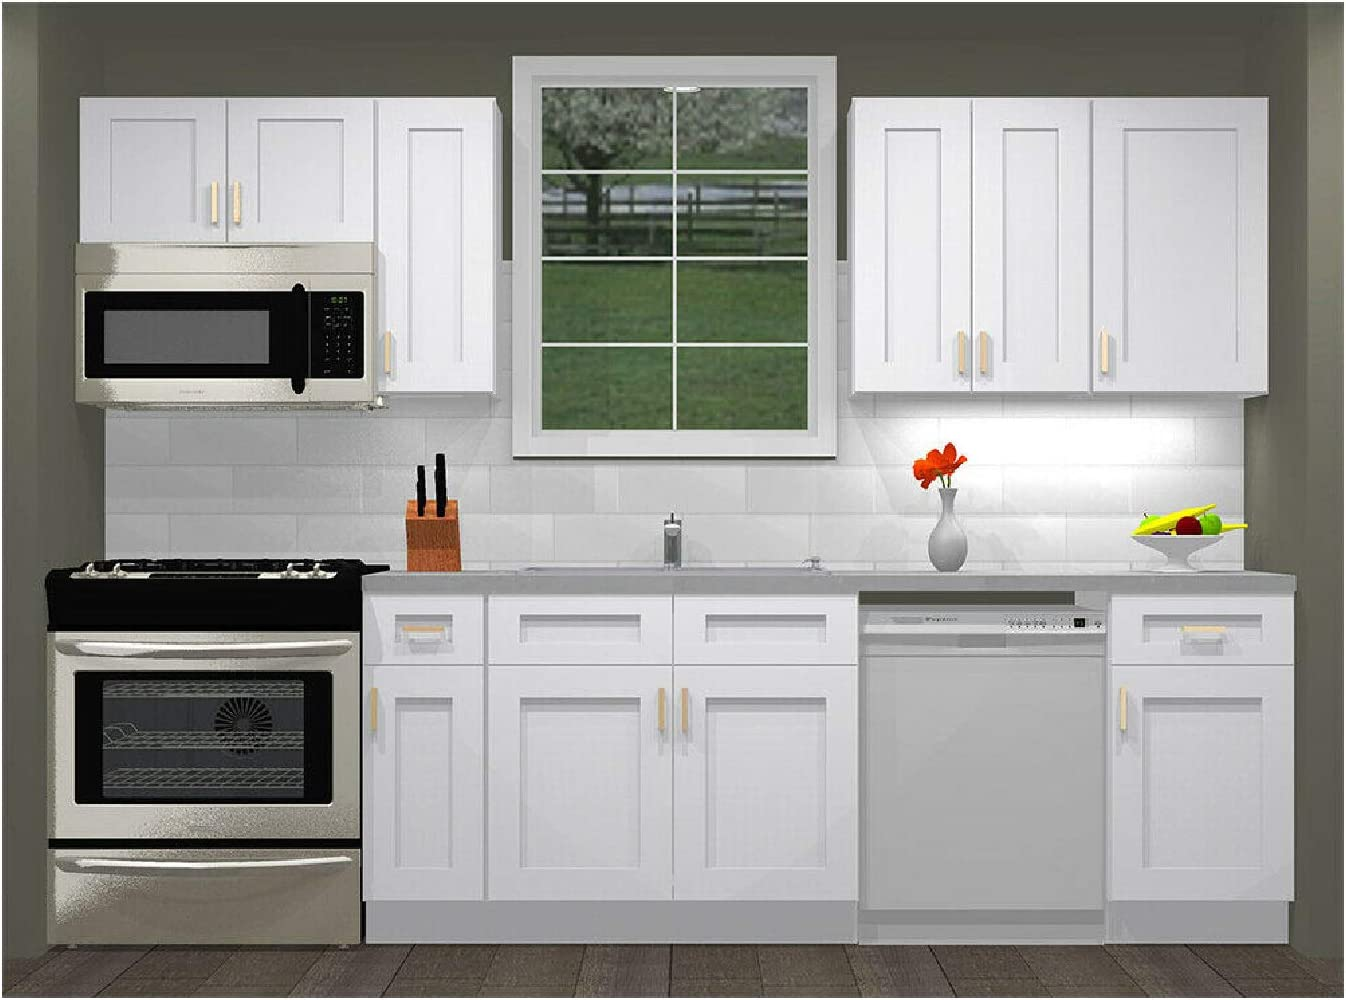 Amazon Com Lily Ann Cabinets 10 Foot Run Wood Kitchen Cabinets Ready To Assemble Rta White Shaker Elite Kitchen Dining